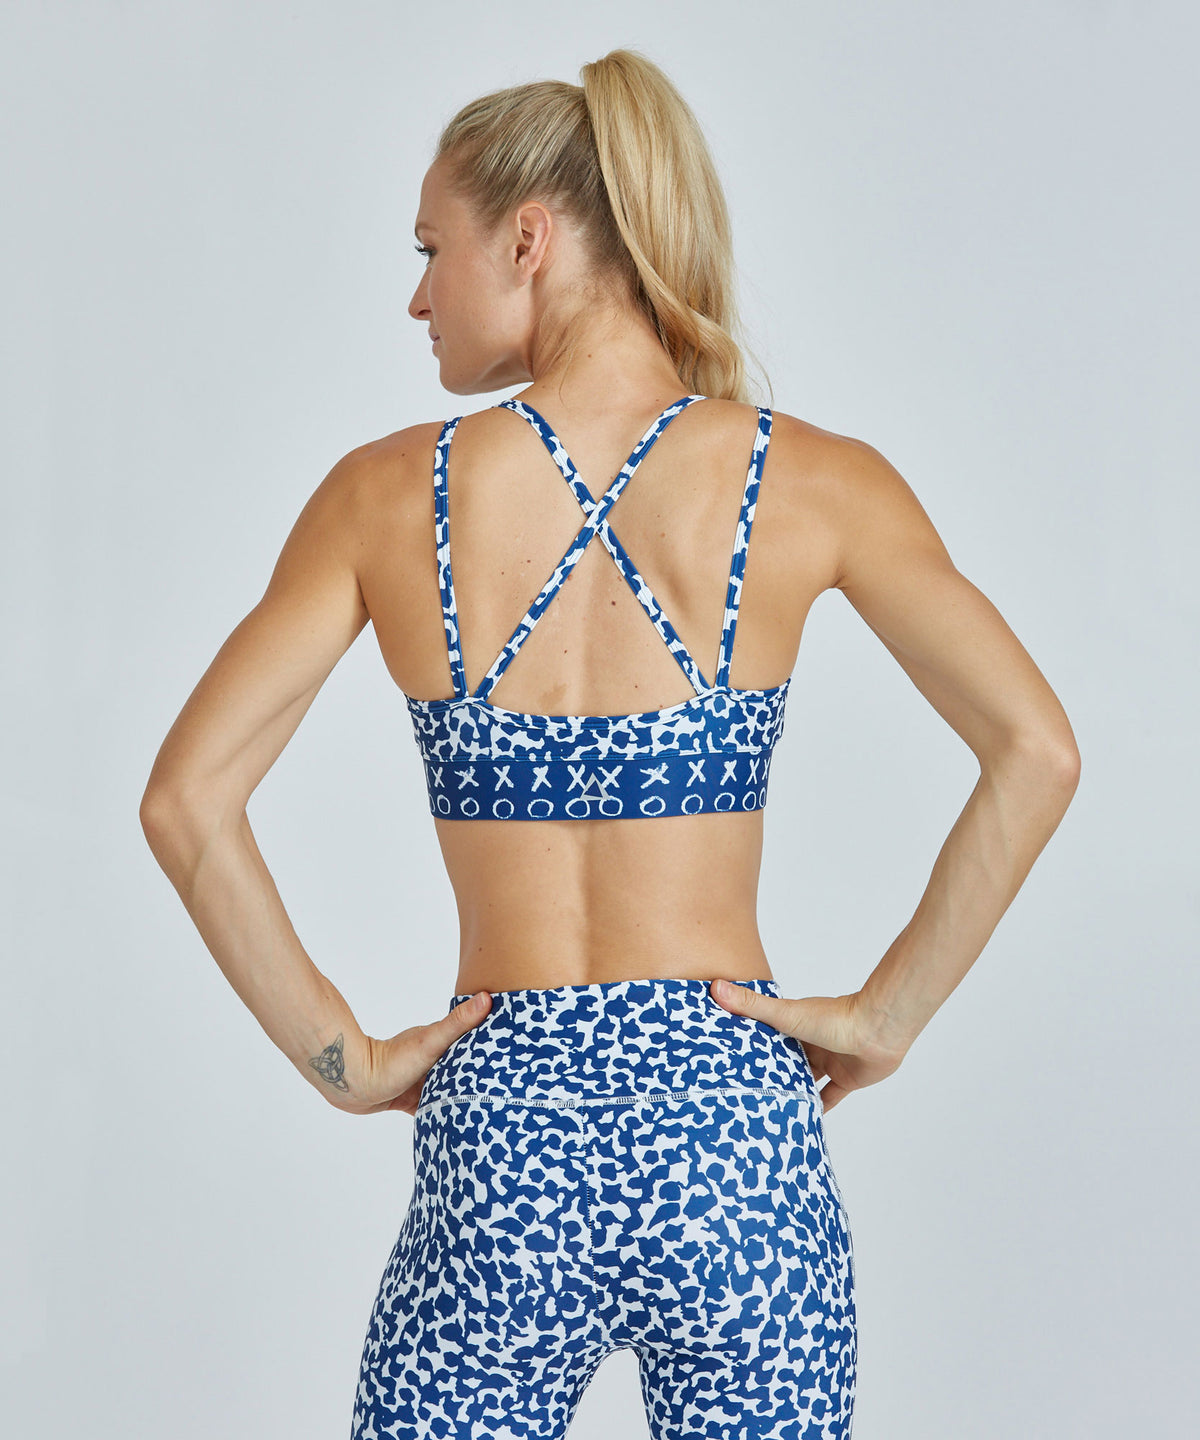 Strappy Bra - Blue Vines Blue Vines Strappy Bra - Women's Sports Bra by PRISMSPORT